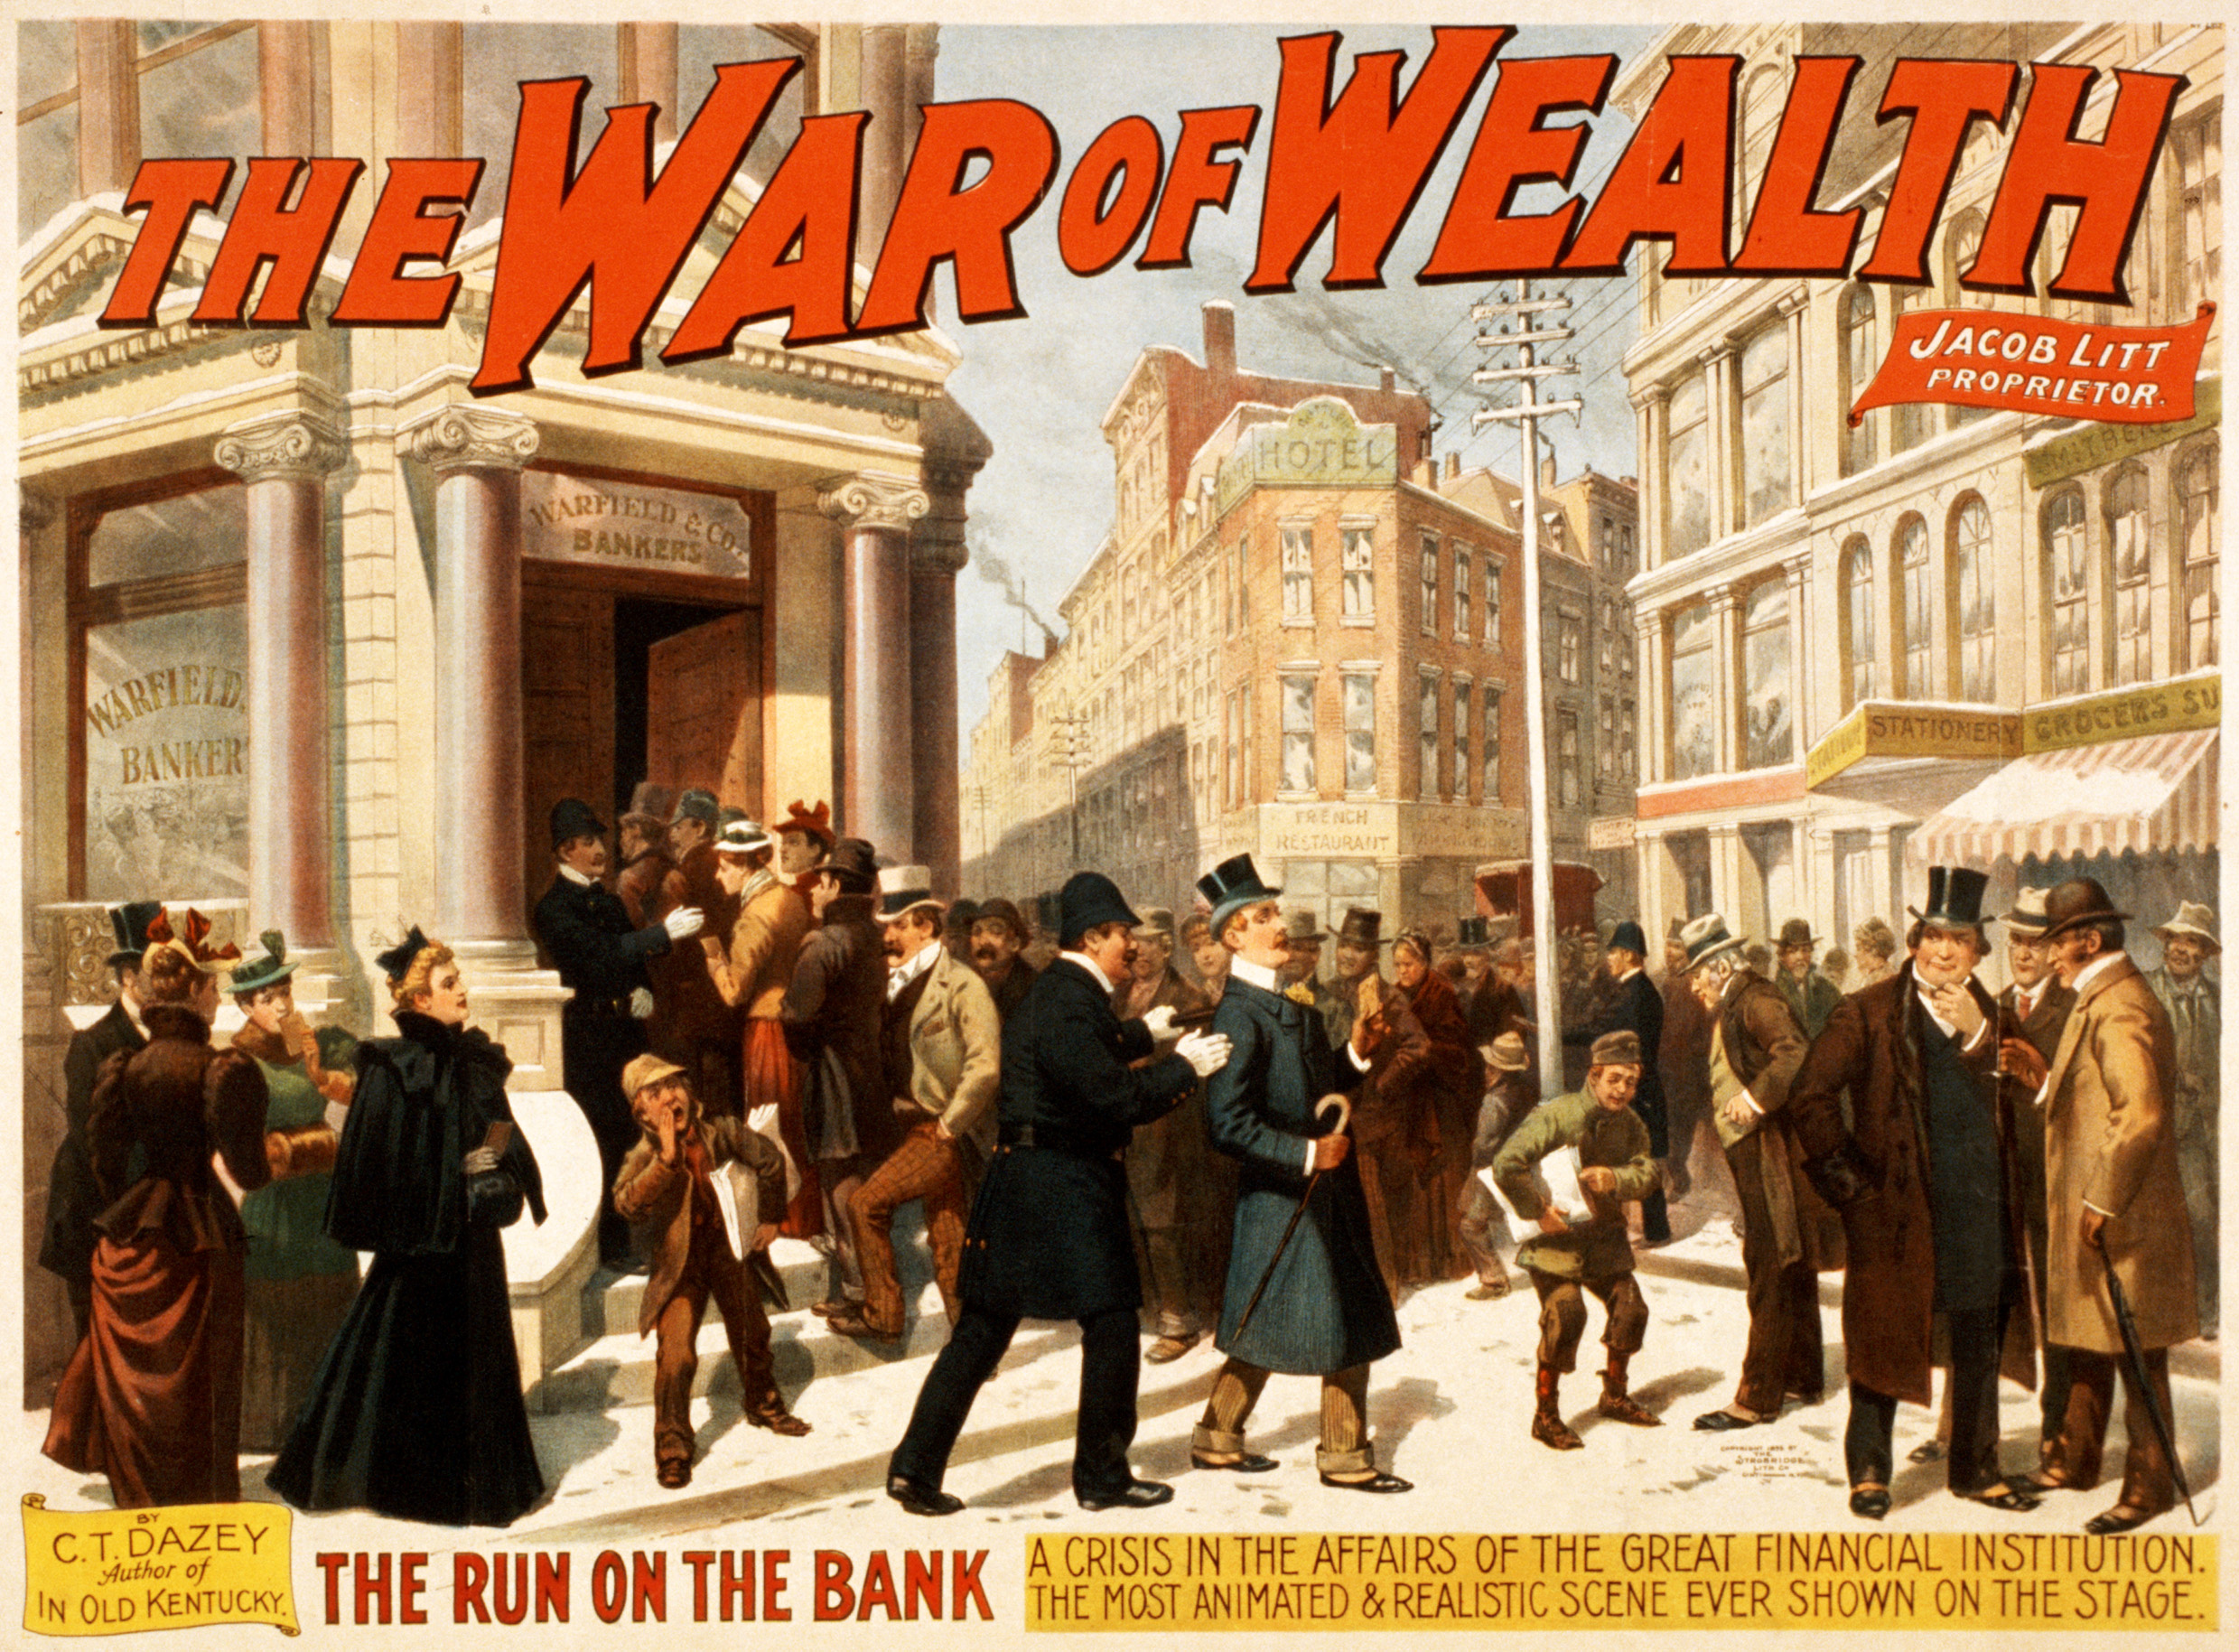 Description War of wealth bank run poster.jpg